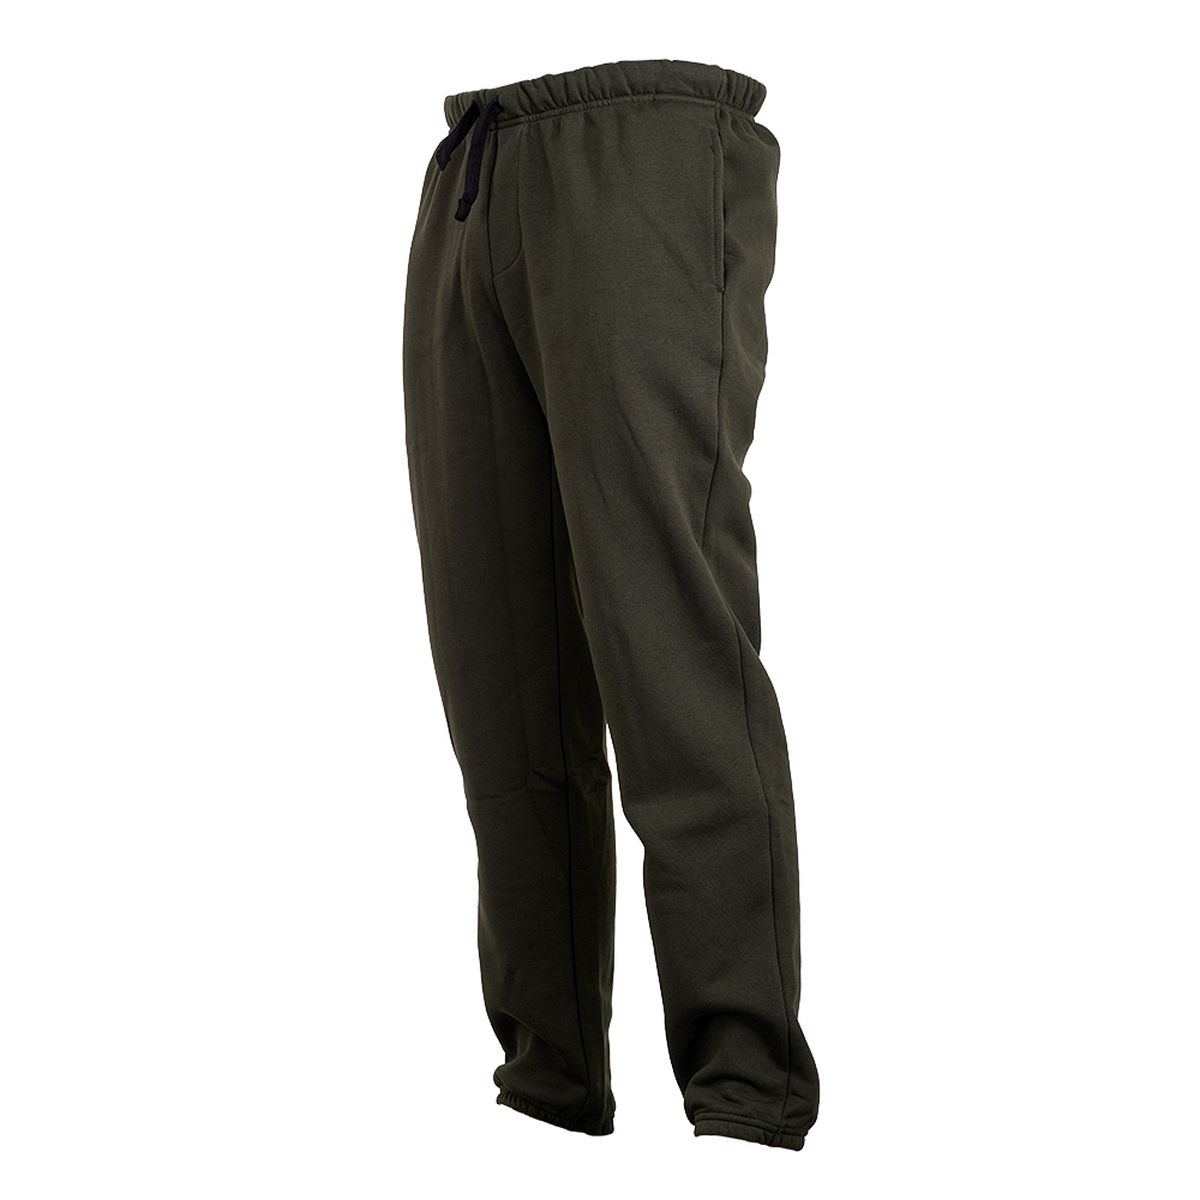 CARPSTYLE BANK JOGGERS - XL